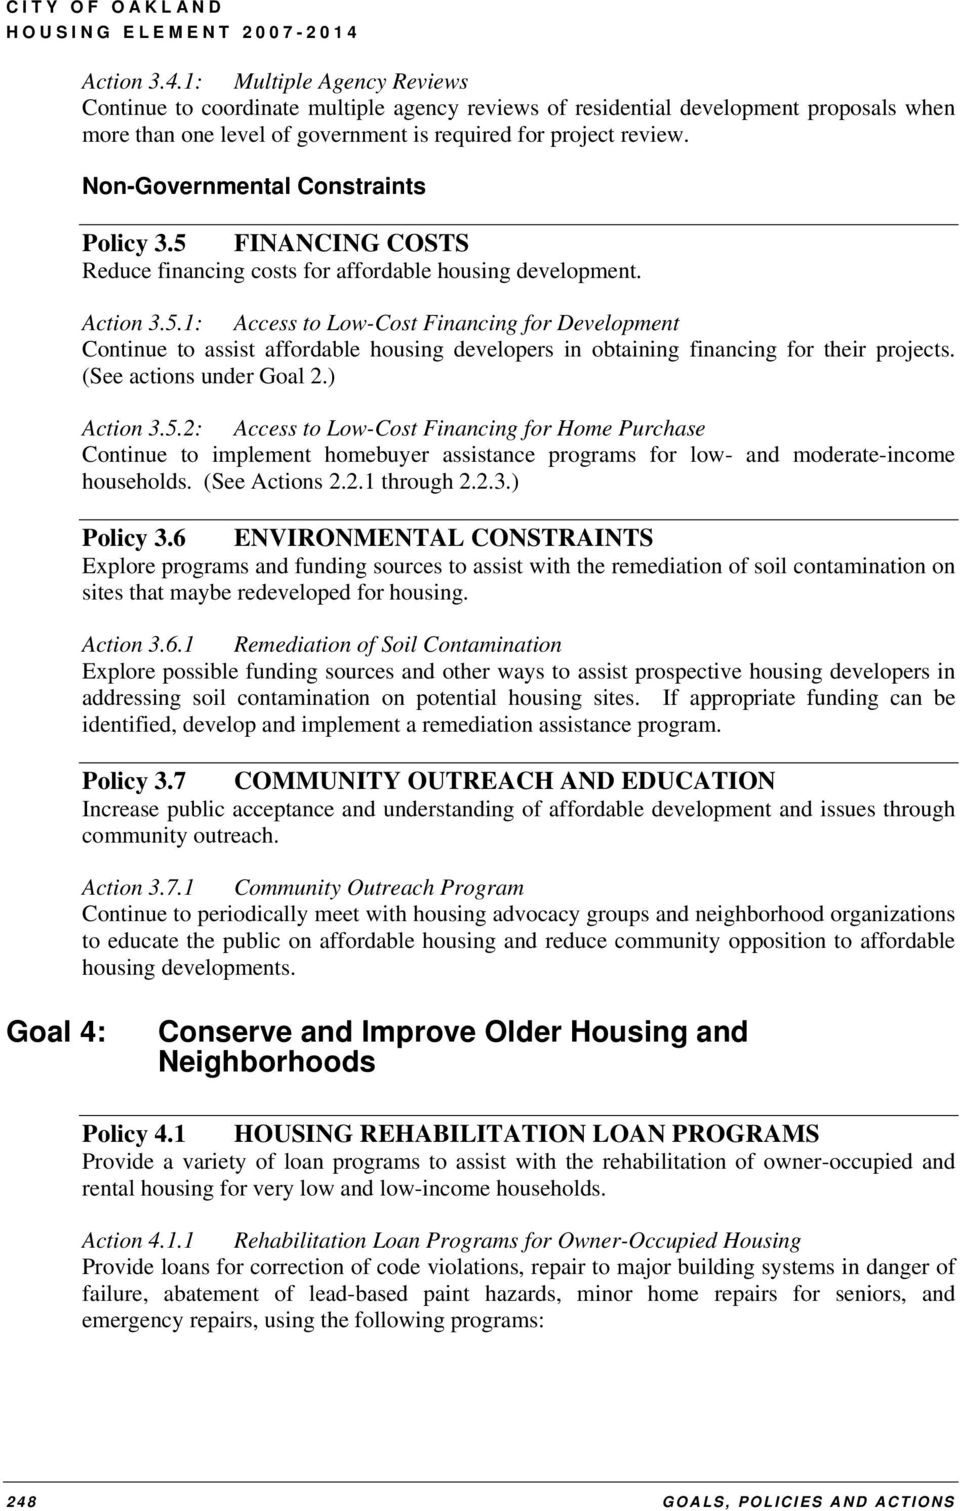 (See actions under Goal 2.) Action 3.5.2: Access to Low-Cost Financing for Home Purchase Continue to implement homebuyer assistance programs for low- and moderate-income households. (See Actions 2.2.1 through 2.